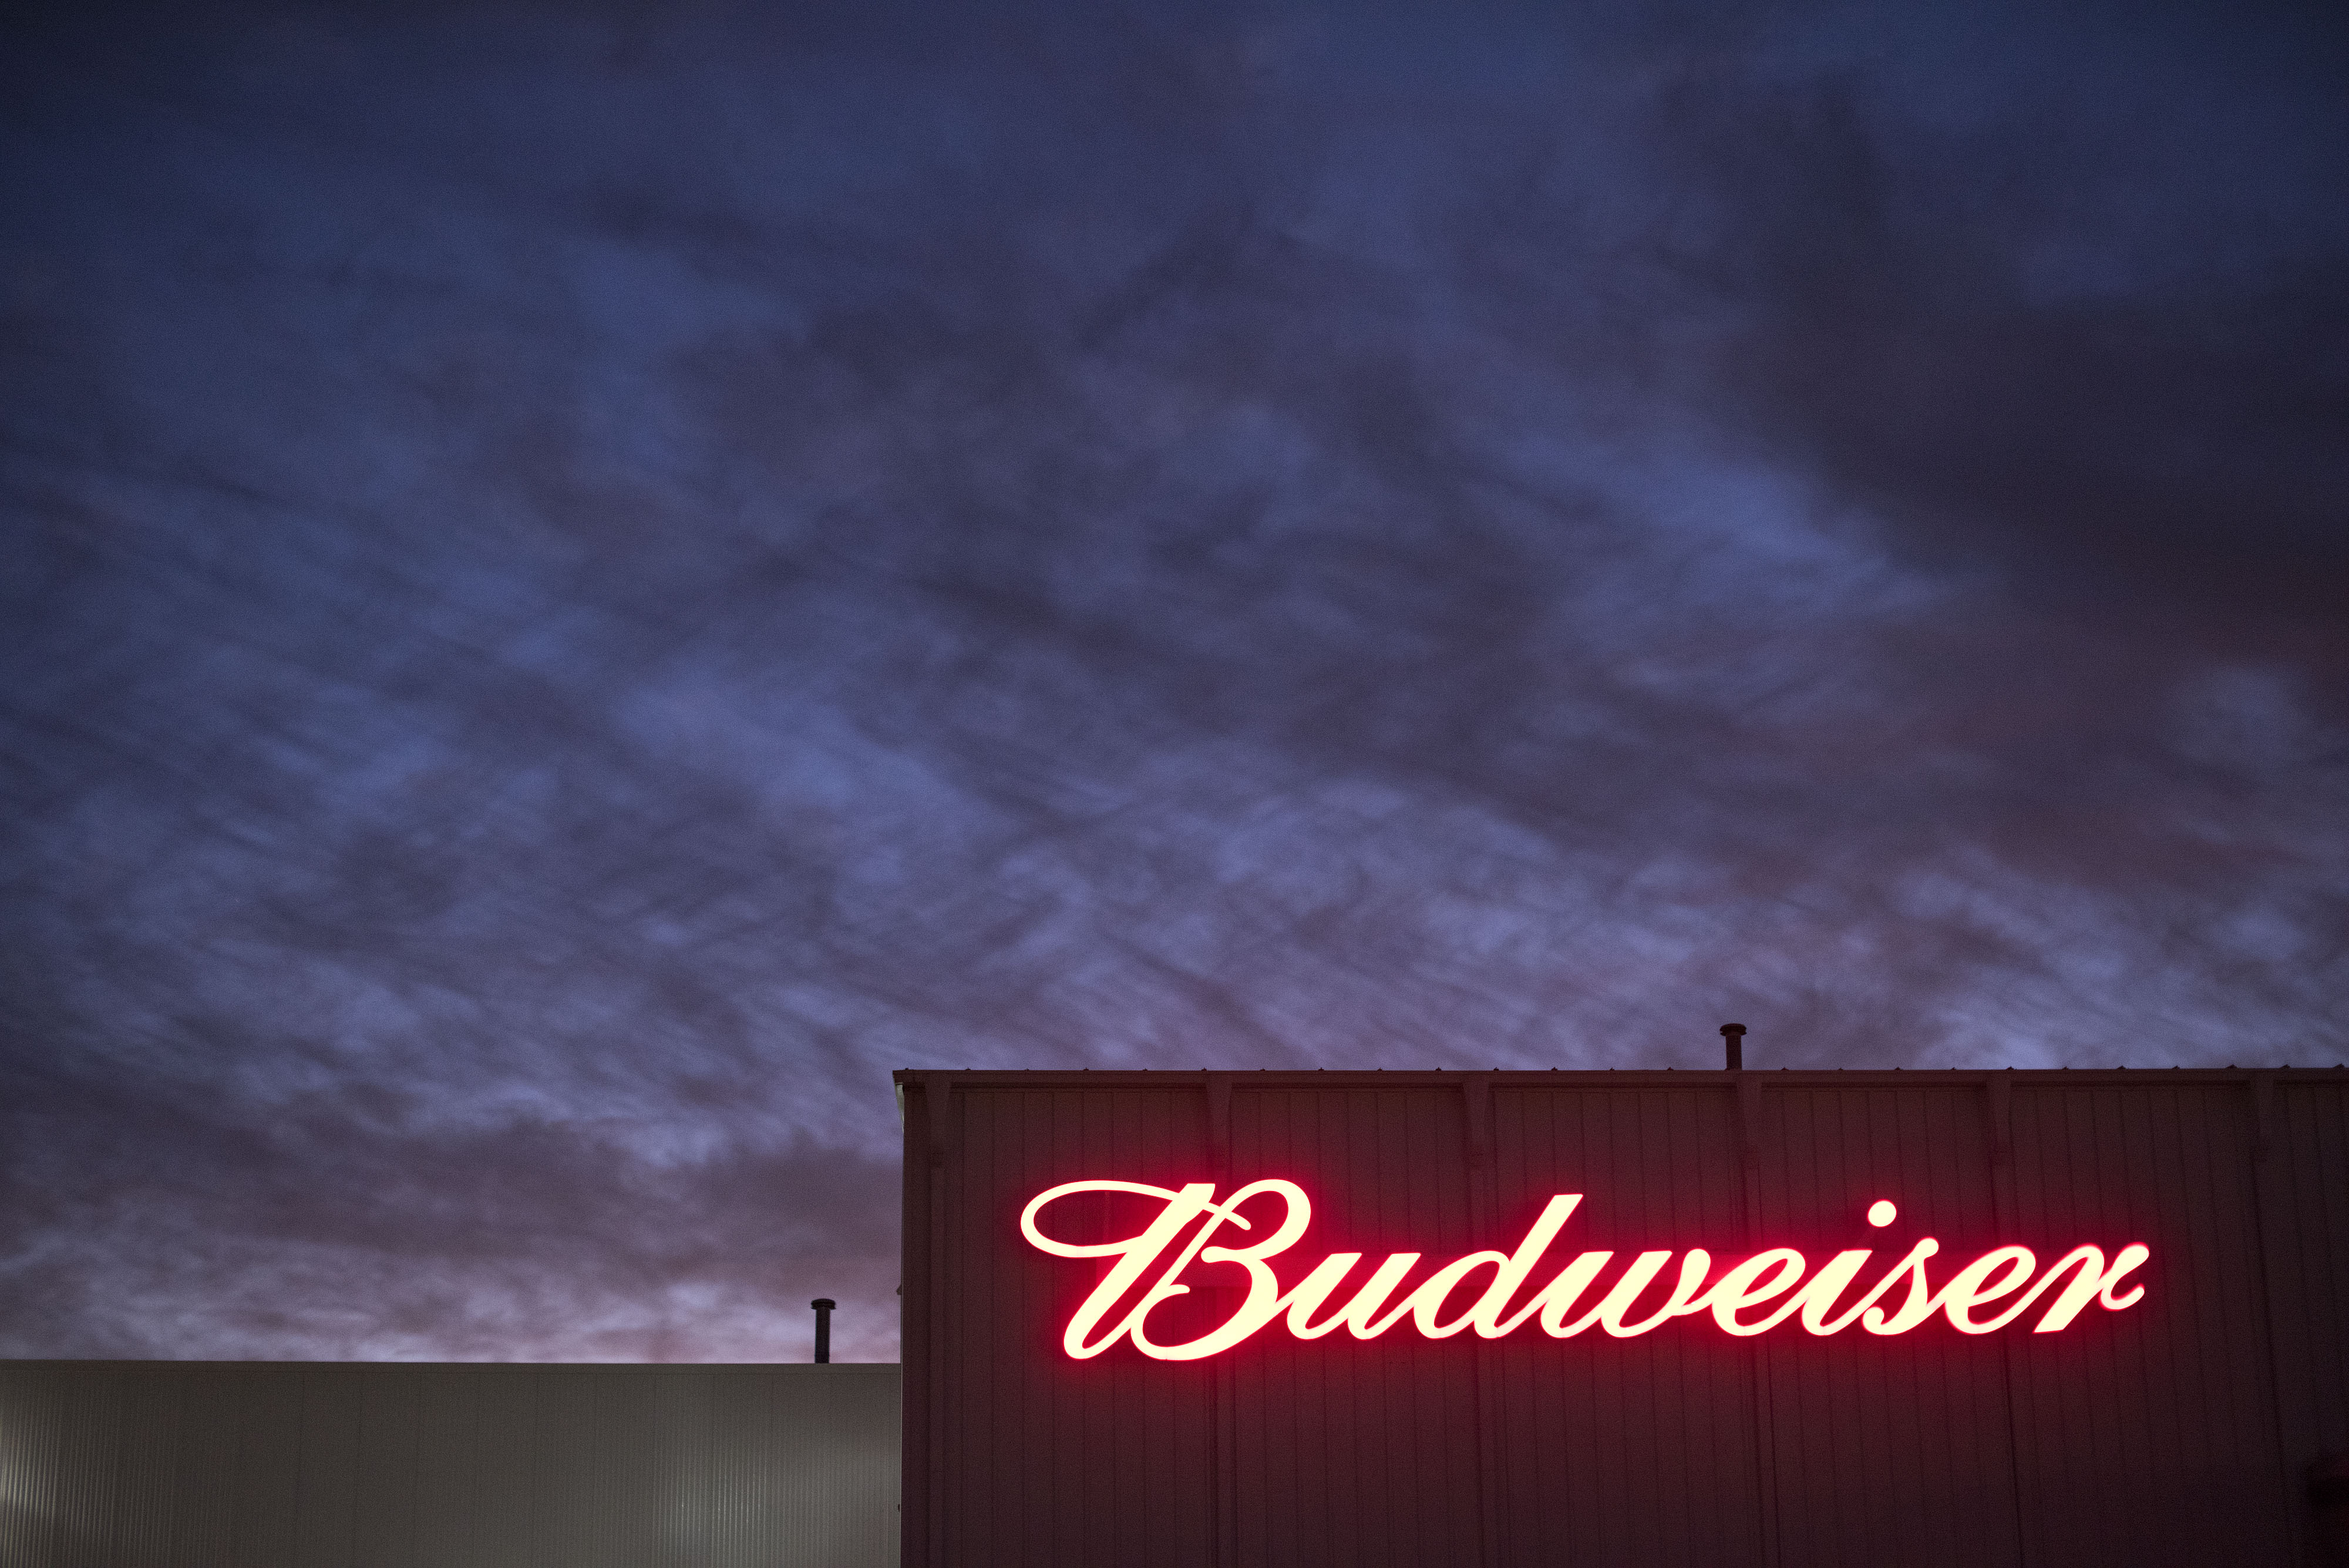 The Budweiser logo is displayed in Peoria, IL on Oct. 30, 2014.